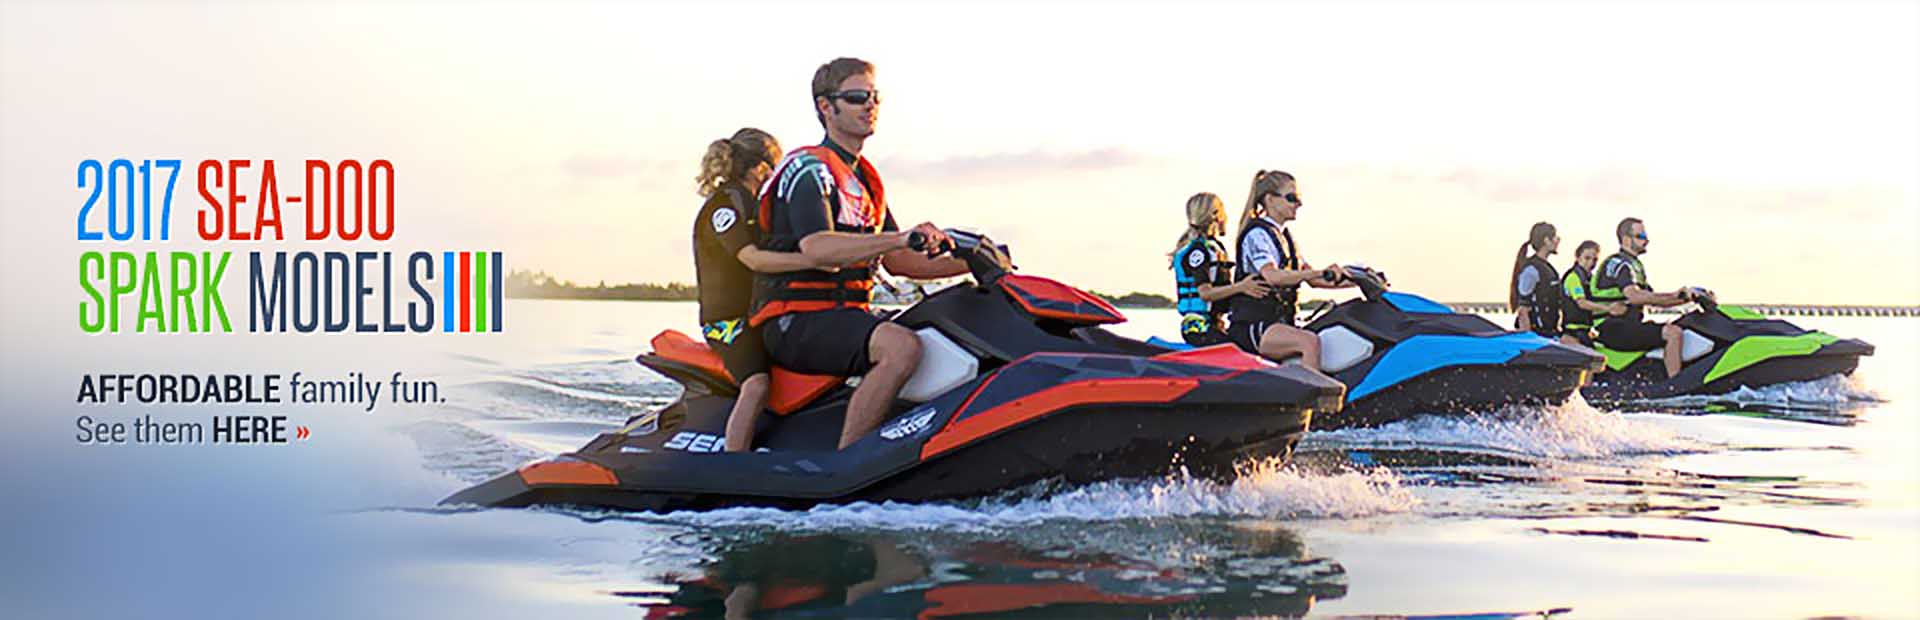 2017 Sea-Doo Spark Models: Click here to see the lineup.